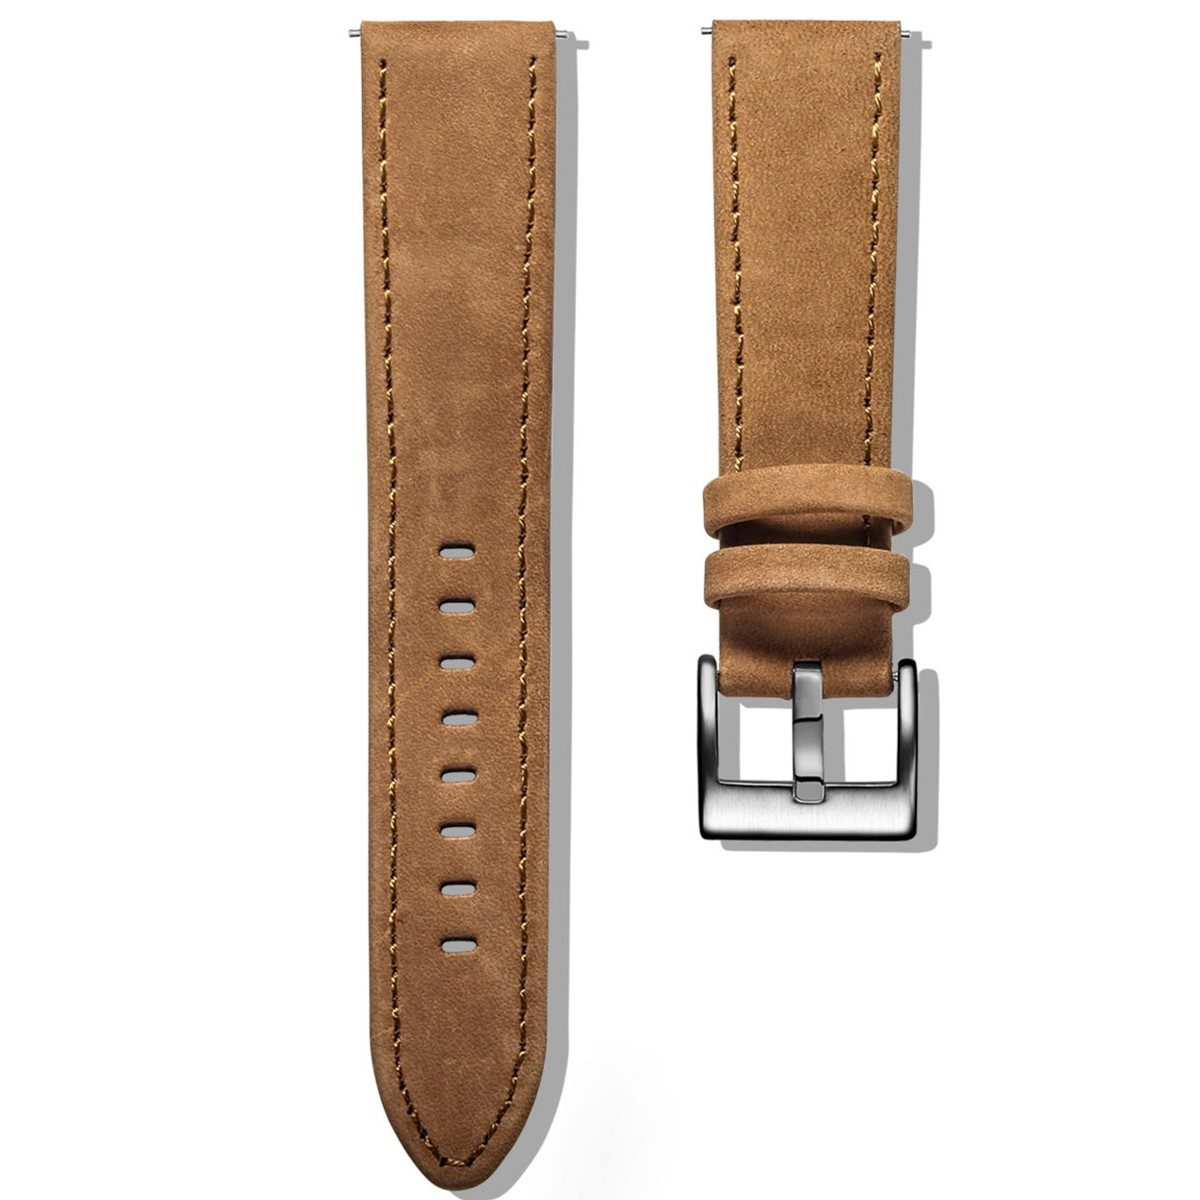 Apple Watch Bands | Genuine Leather Watch Bands | Suede Brown